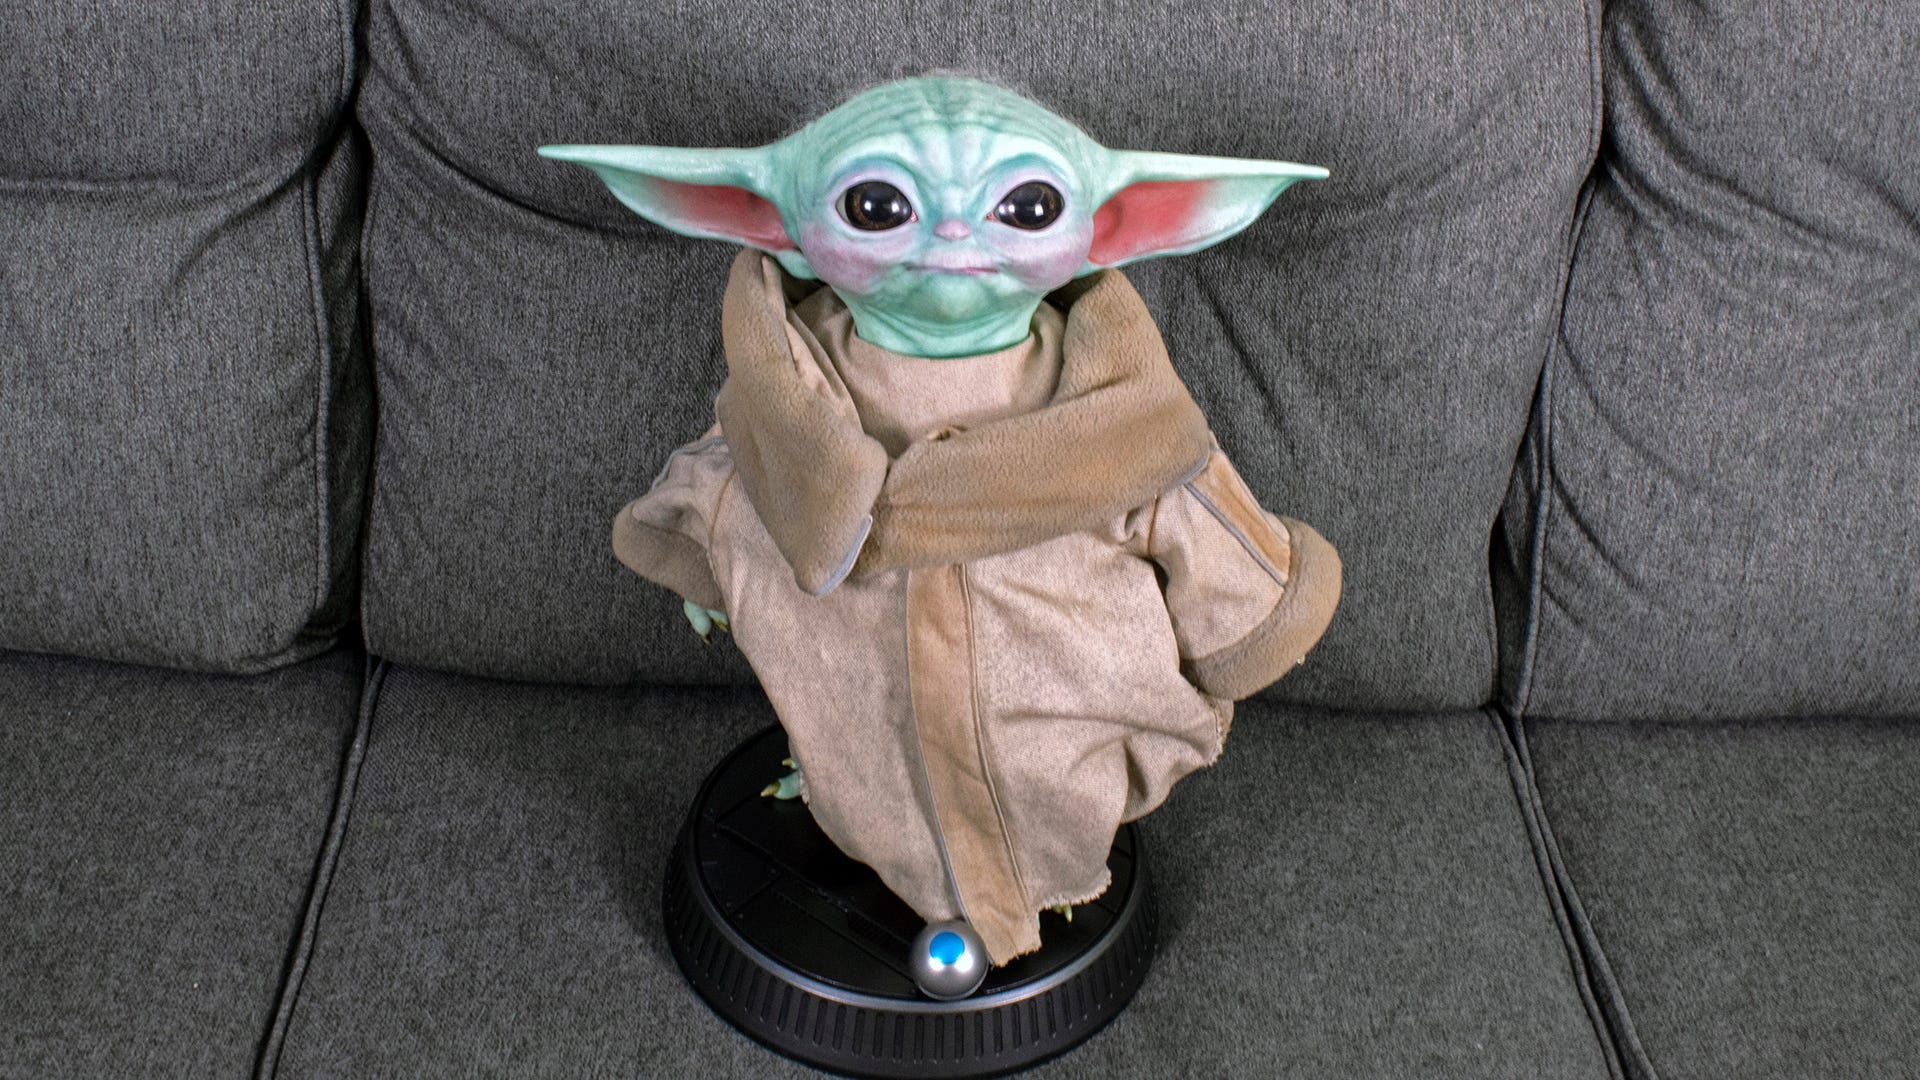 I Spent $350 on a Life-Sized Baby Yoda Replica and I Ain't Even Mad